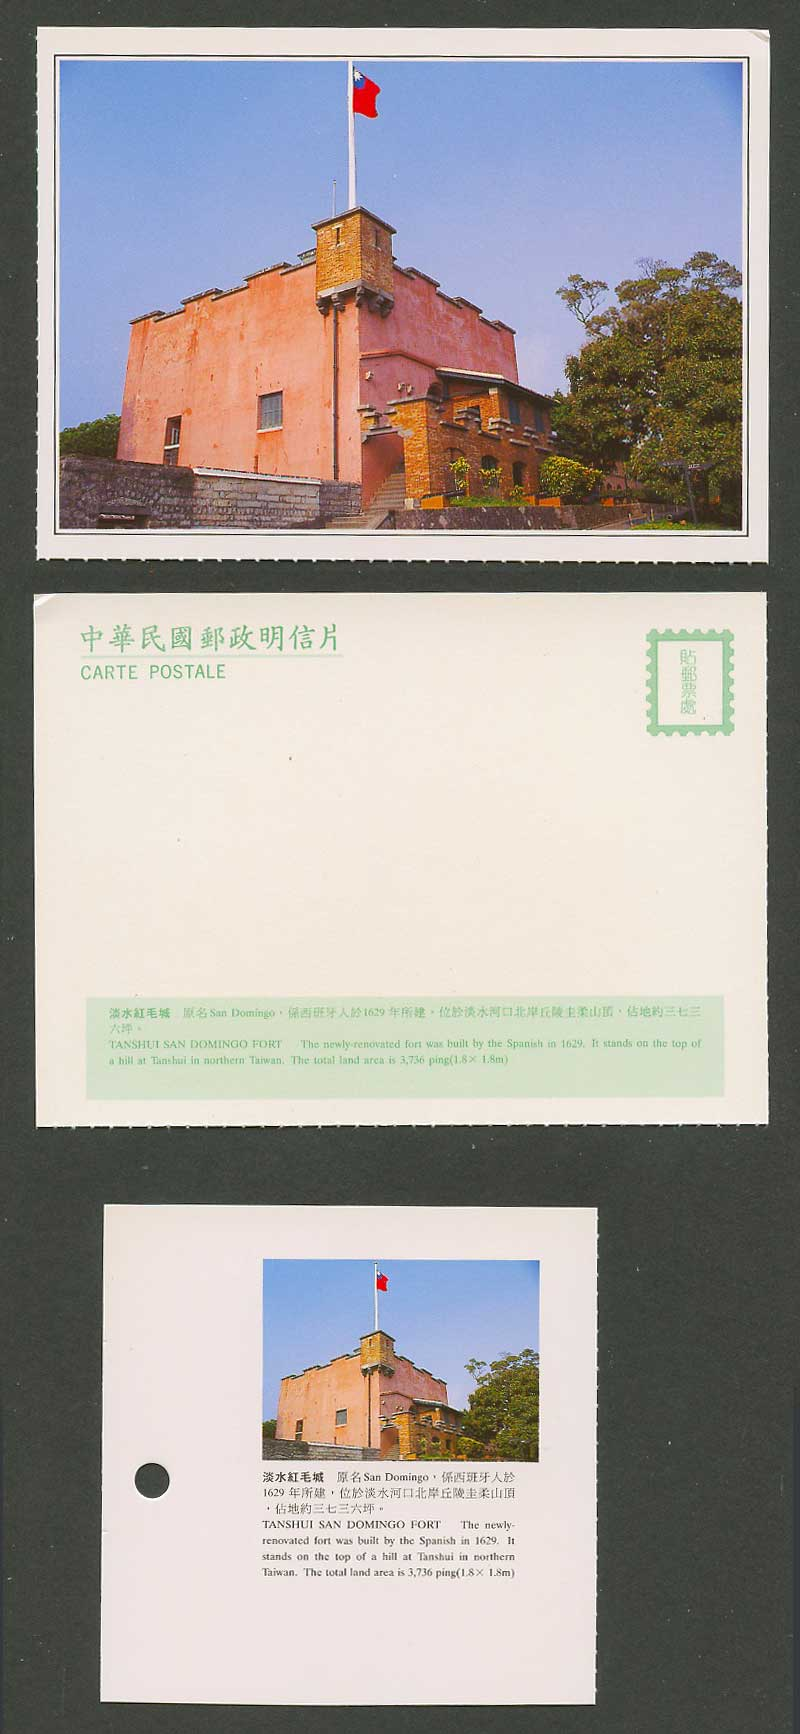 Taiwan Formosa China Postcard Tanshui San Domingo Fort Fortress, Flag 淡水江毛城 圭柔山頂